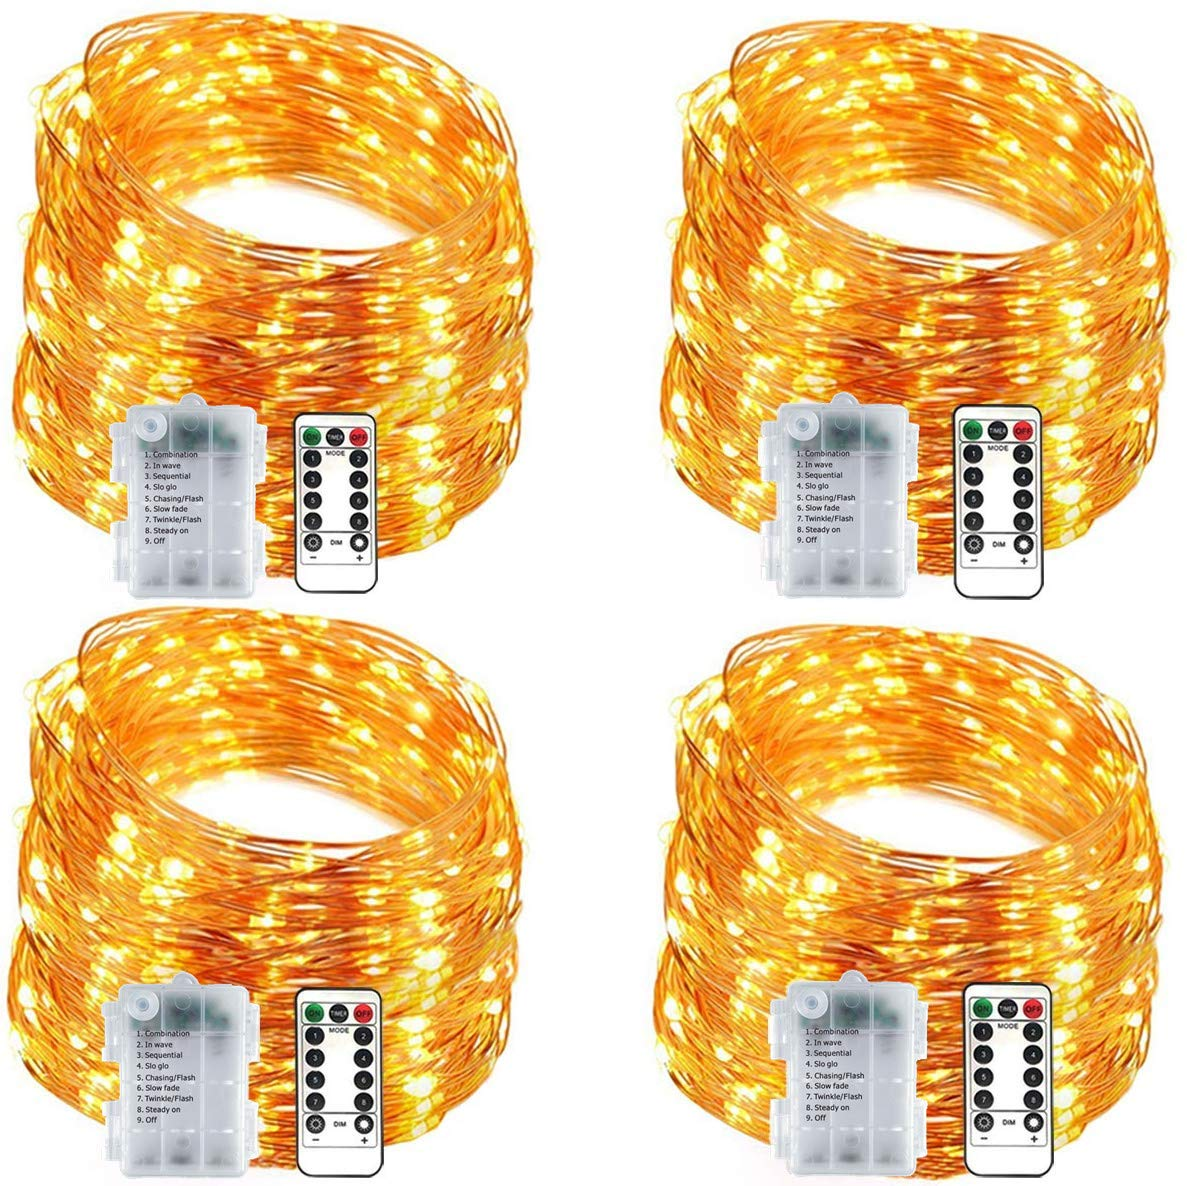 4 Pack Fairy Lights 12ft 20 Mini LEDs String Lights Battery Operated Waterproof